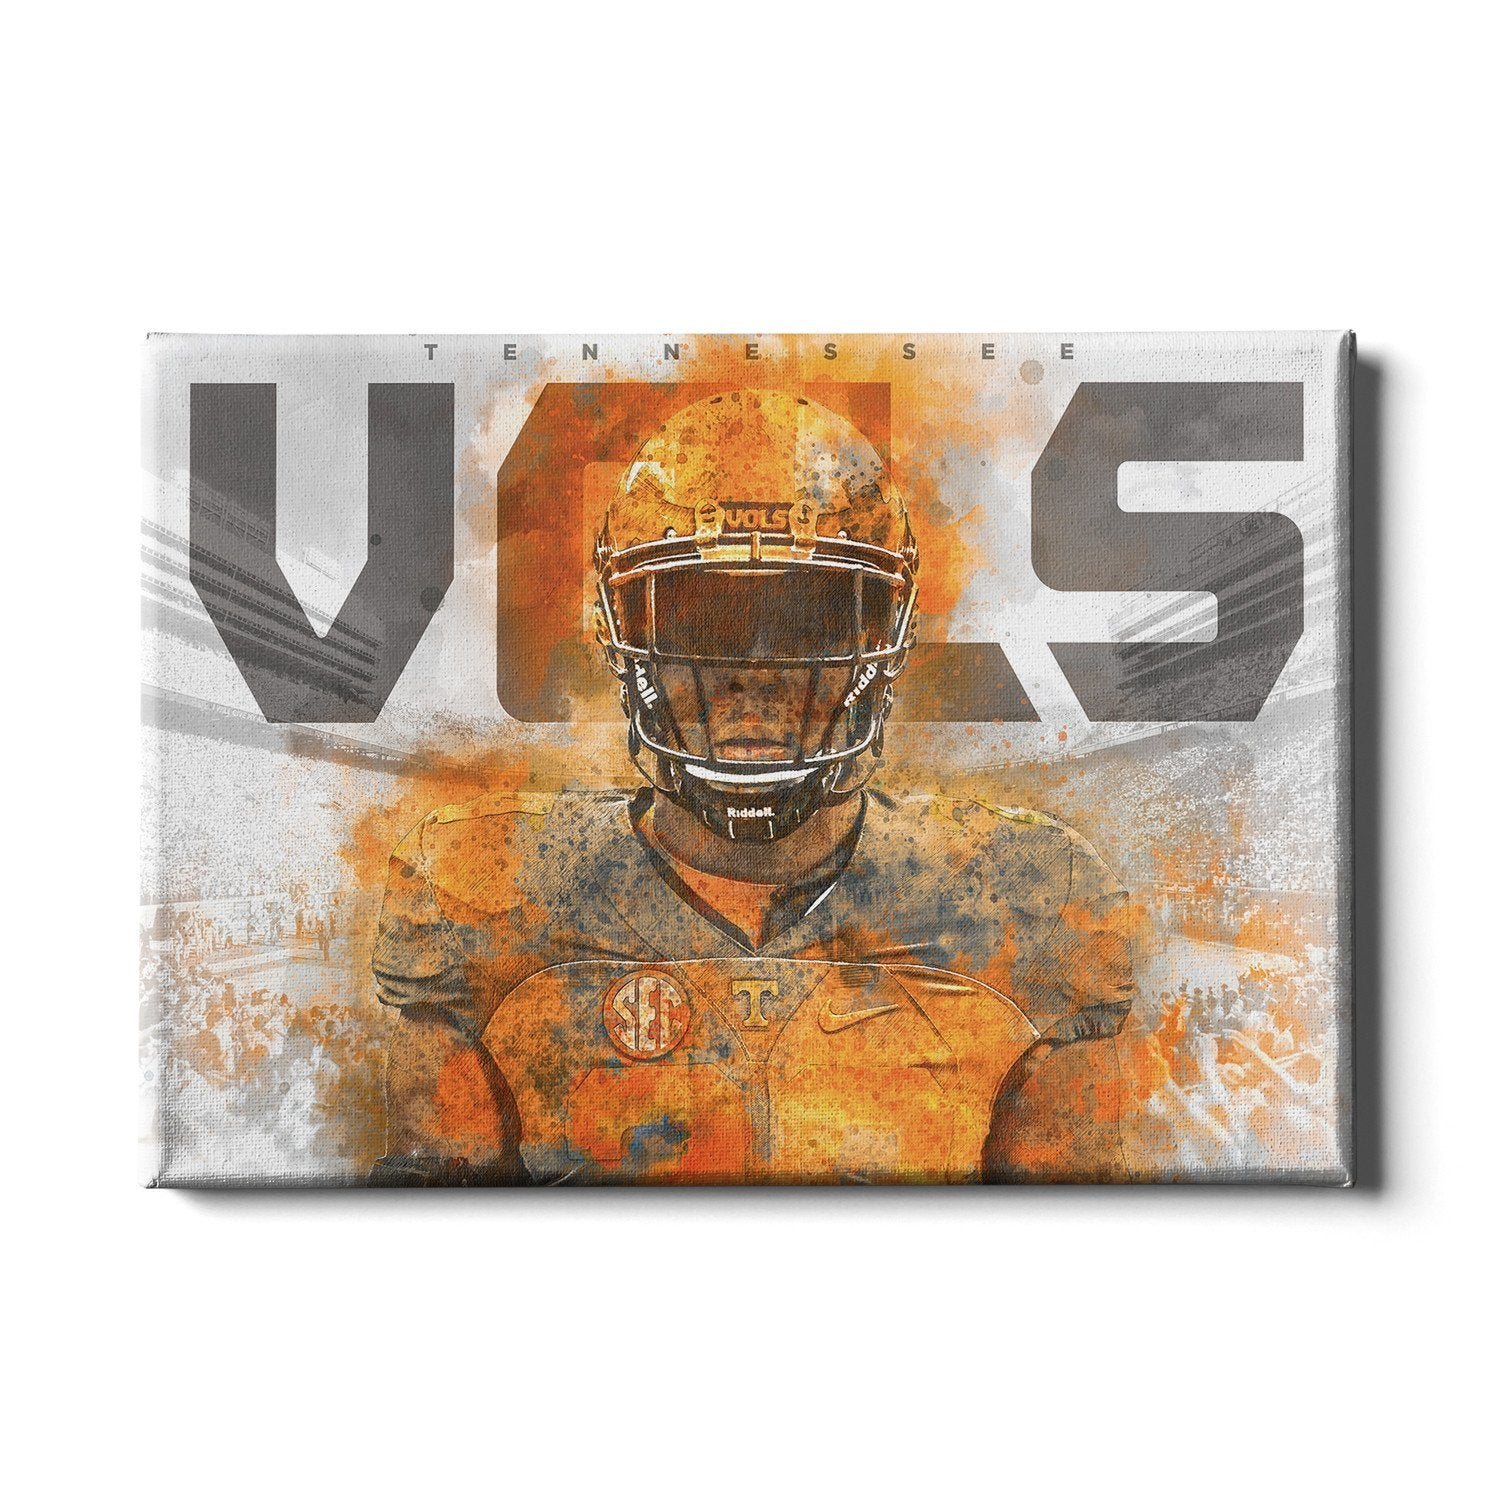 Tennessee Volunteers - Smokey VOLS 2017 - College Wall Art #Canvas